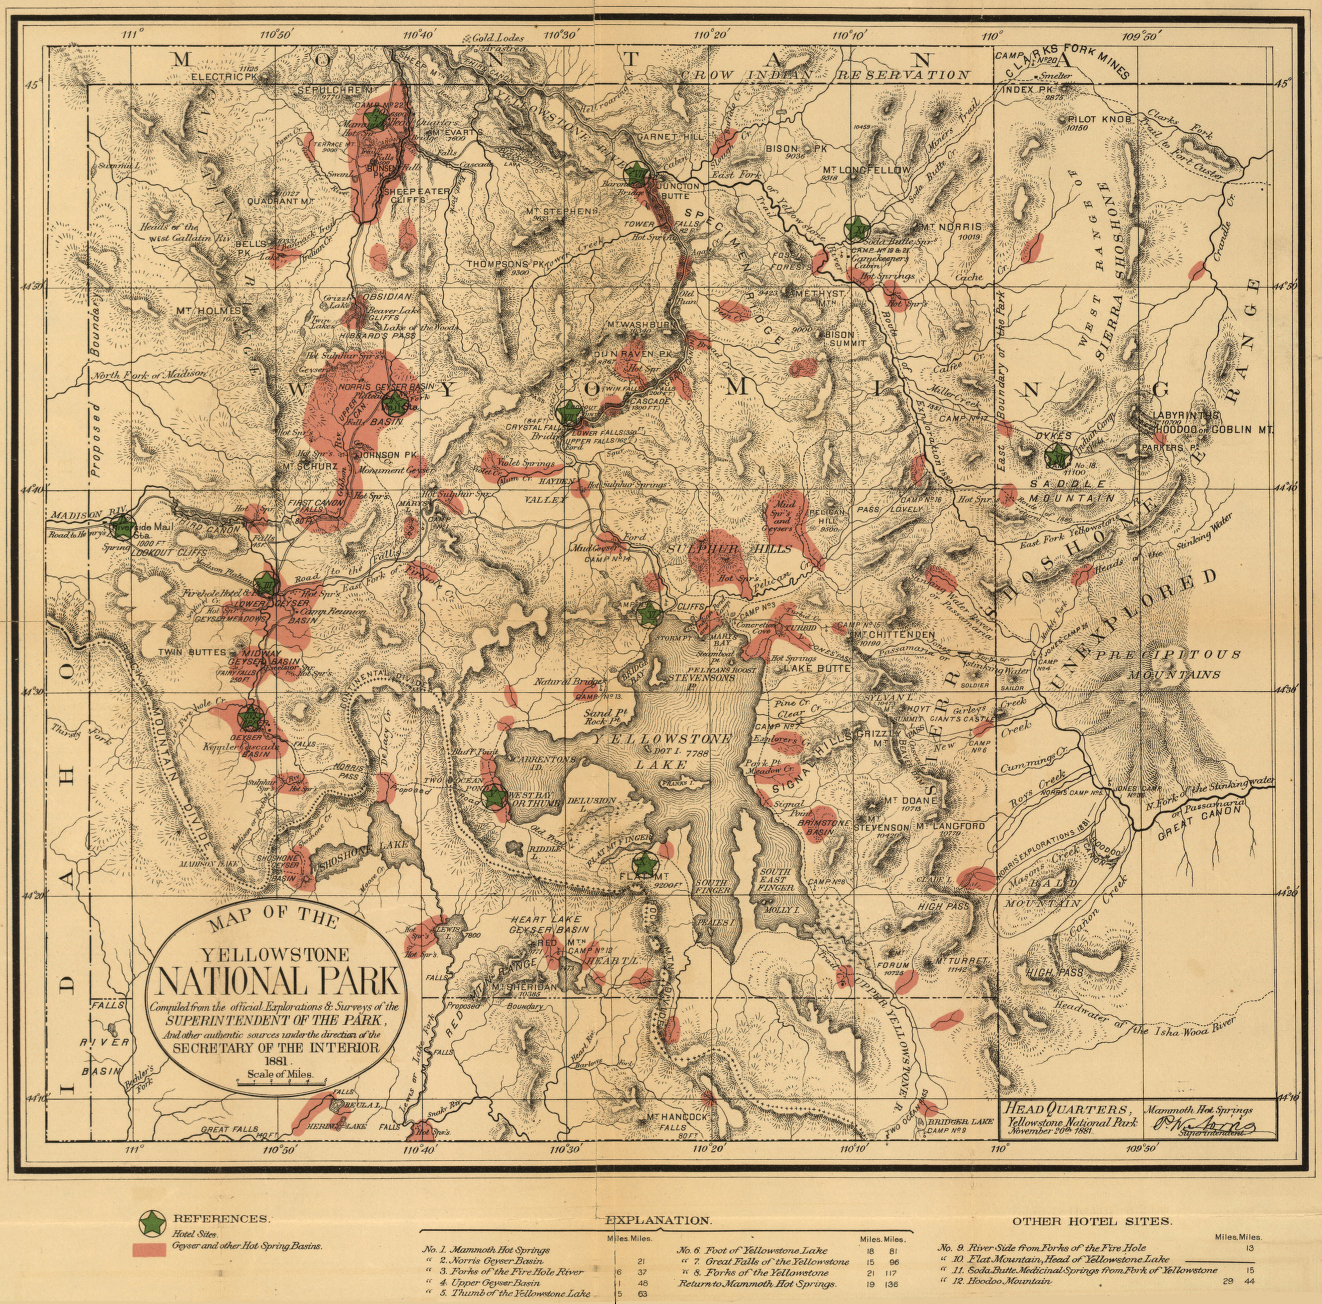 Yellowstone National Park 1881 Historical Map  Yellowstone Up